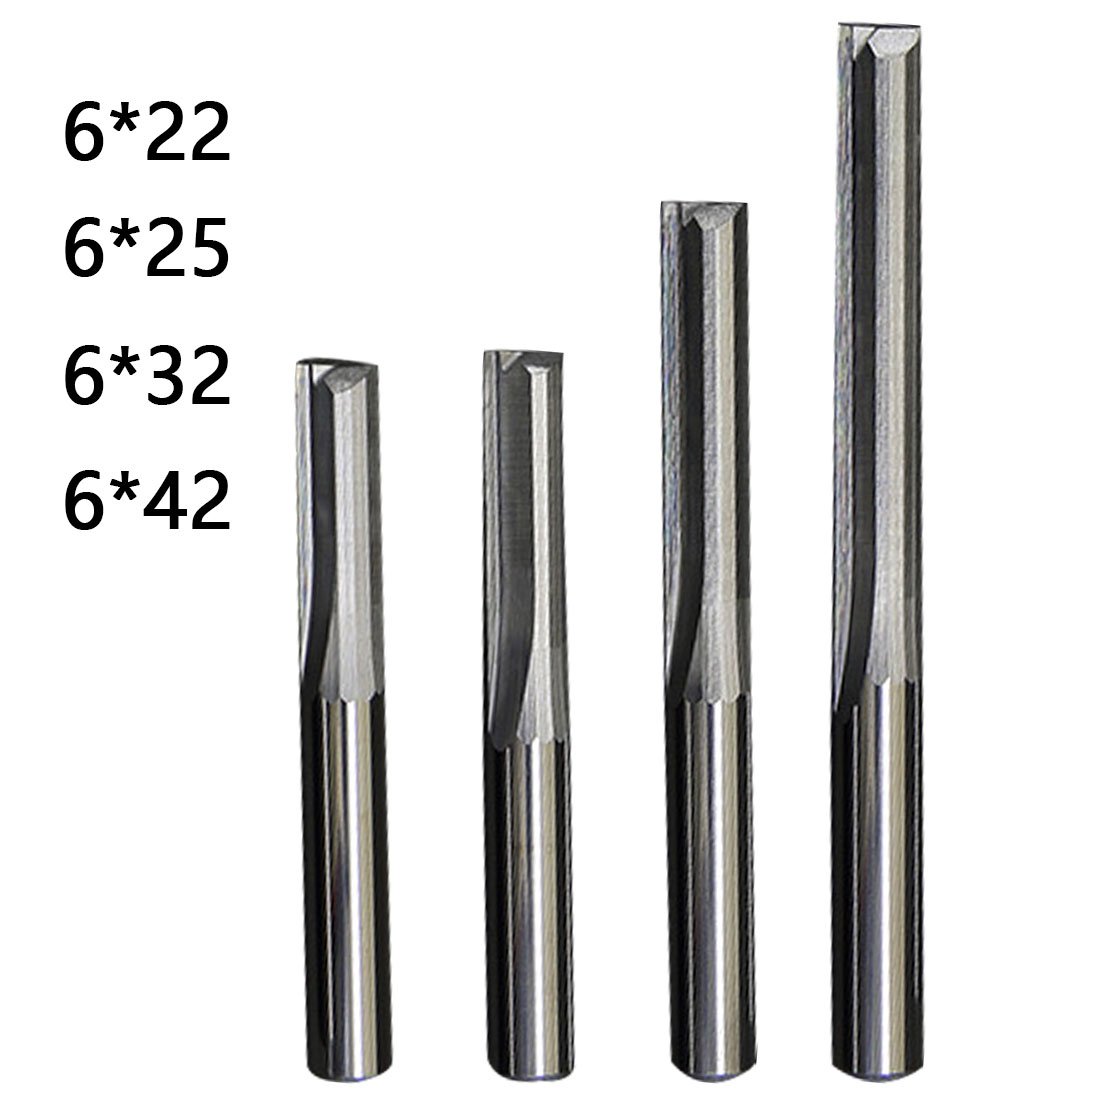 Milling Cutter 6mm/4mm Shank Two Flutes Straight Router Bits for Wood CNC Straight Engraving Cutters End Mill ToolsMilling Cutter 6mm/4mm Shank Two Flutes Straight Router Bits for Wood CNC Straight Engraving Cutters End Mill Tools